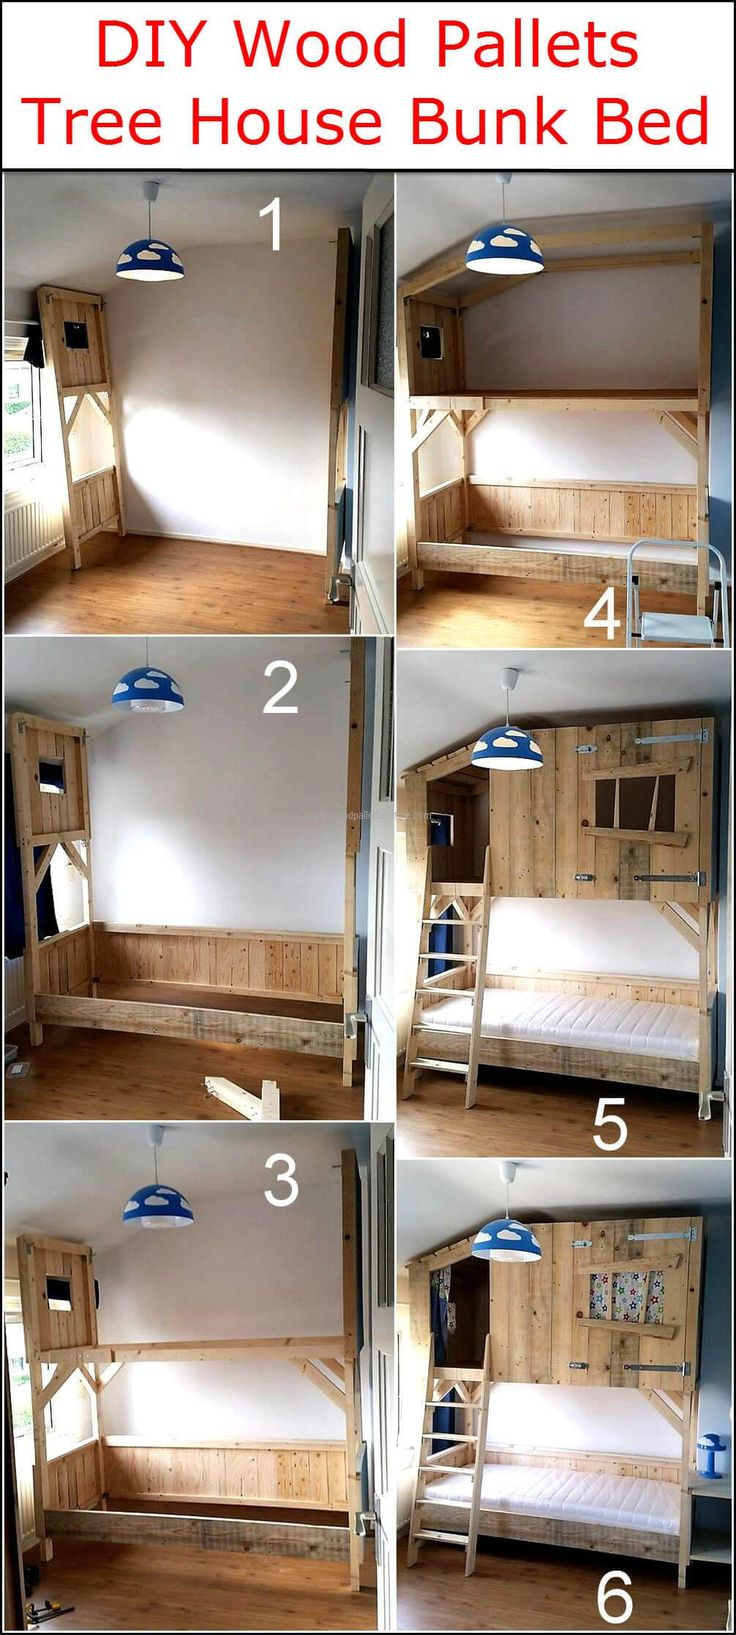 Bunk bed is great to place in the kid's room because it saves the space as well as it keeps the kids happy that they have something unique in their room. There are many styles of bunk beds available in the furniture stores, but why not to save the money when a person can create a bunk bed at home with an innovative design. We are going to show an idea to create DIY shipping pallet tree house bunk bed which will not only allow the space to sleep, but also space to play and store the toys.